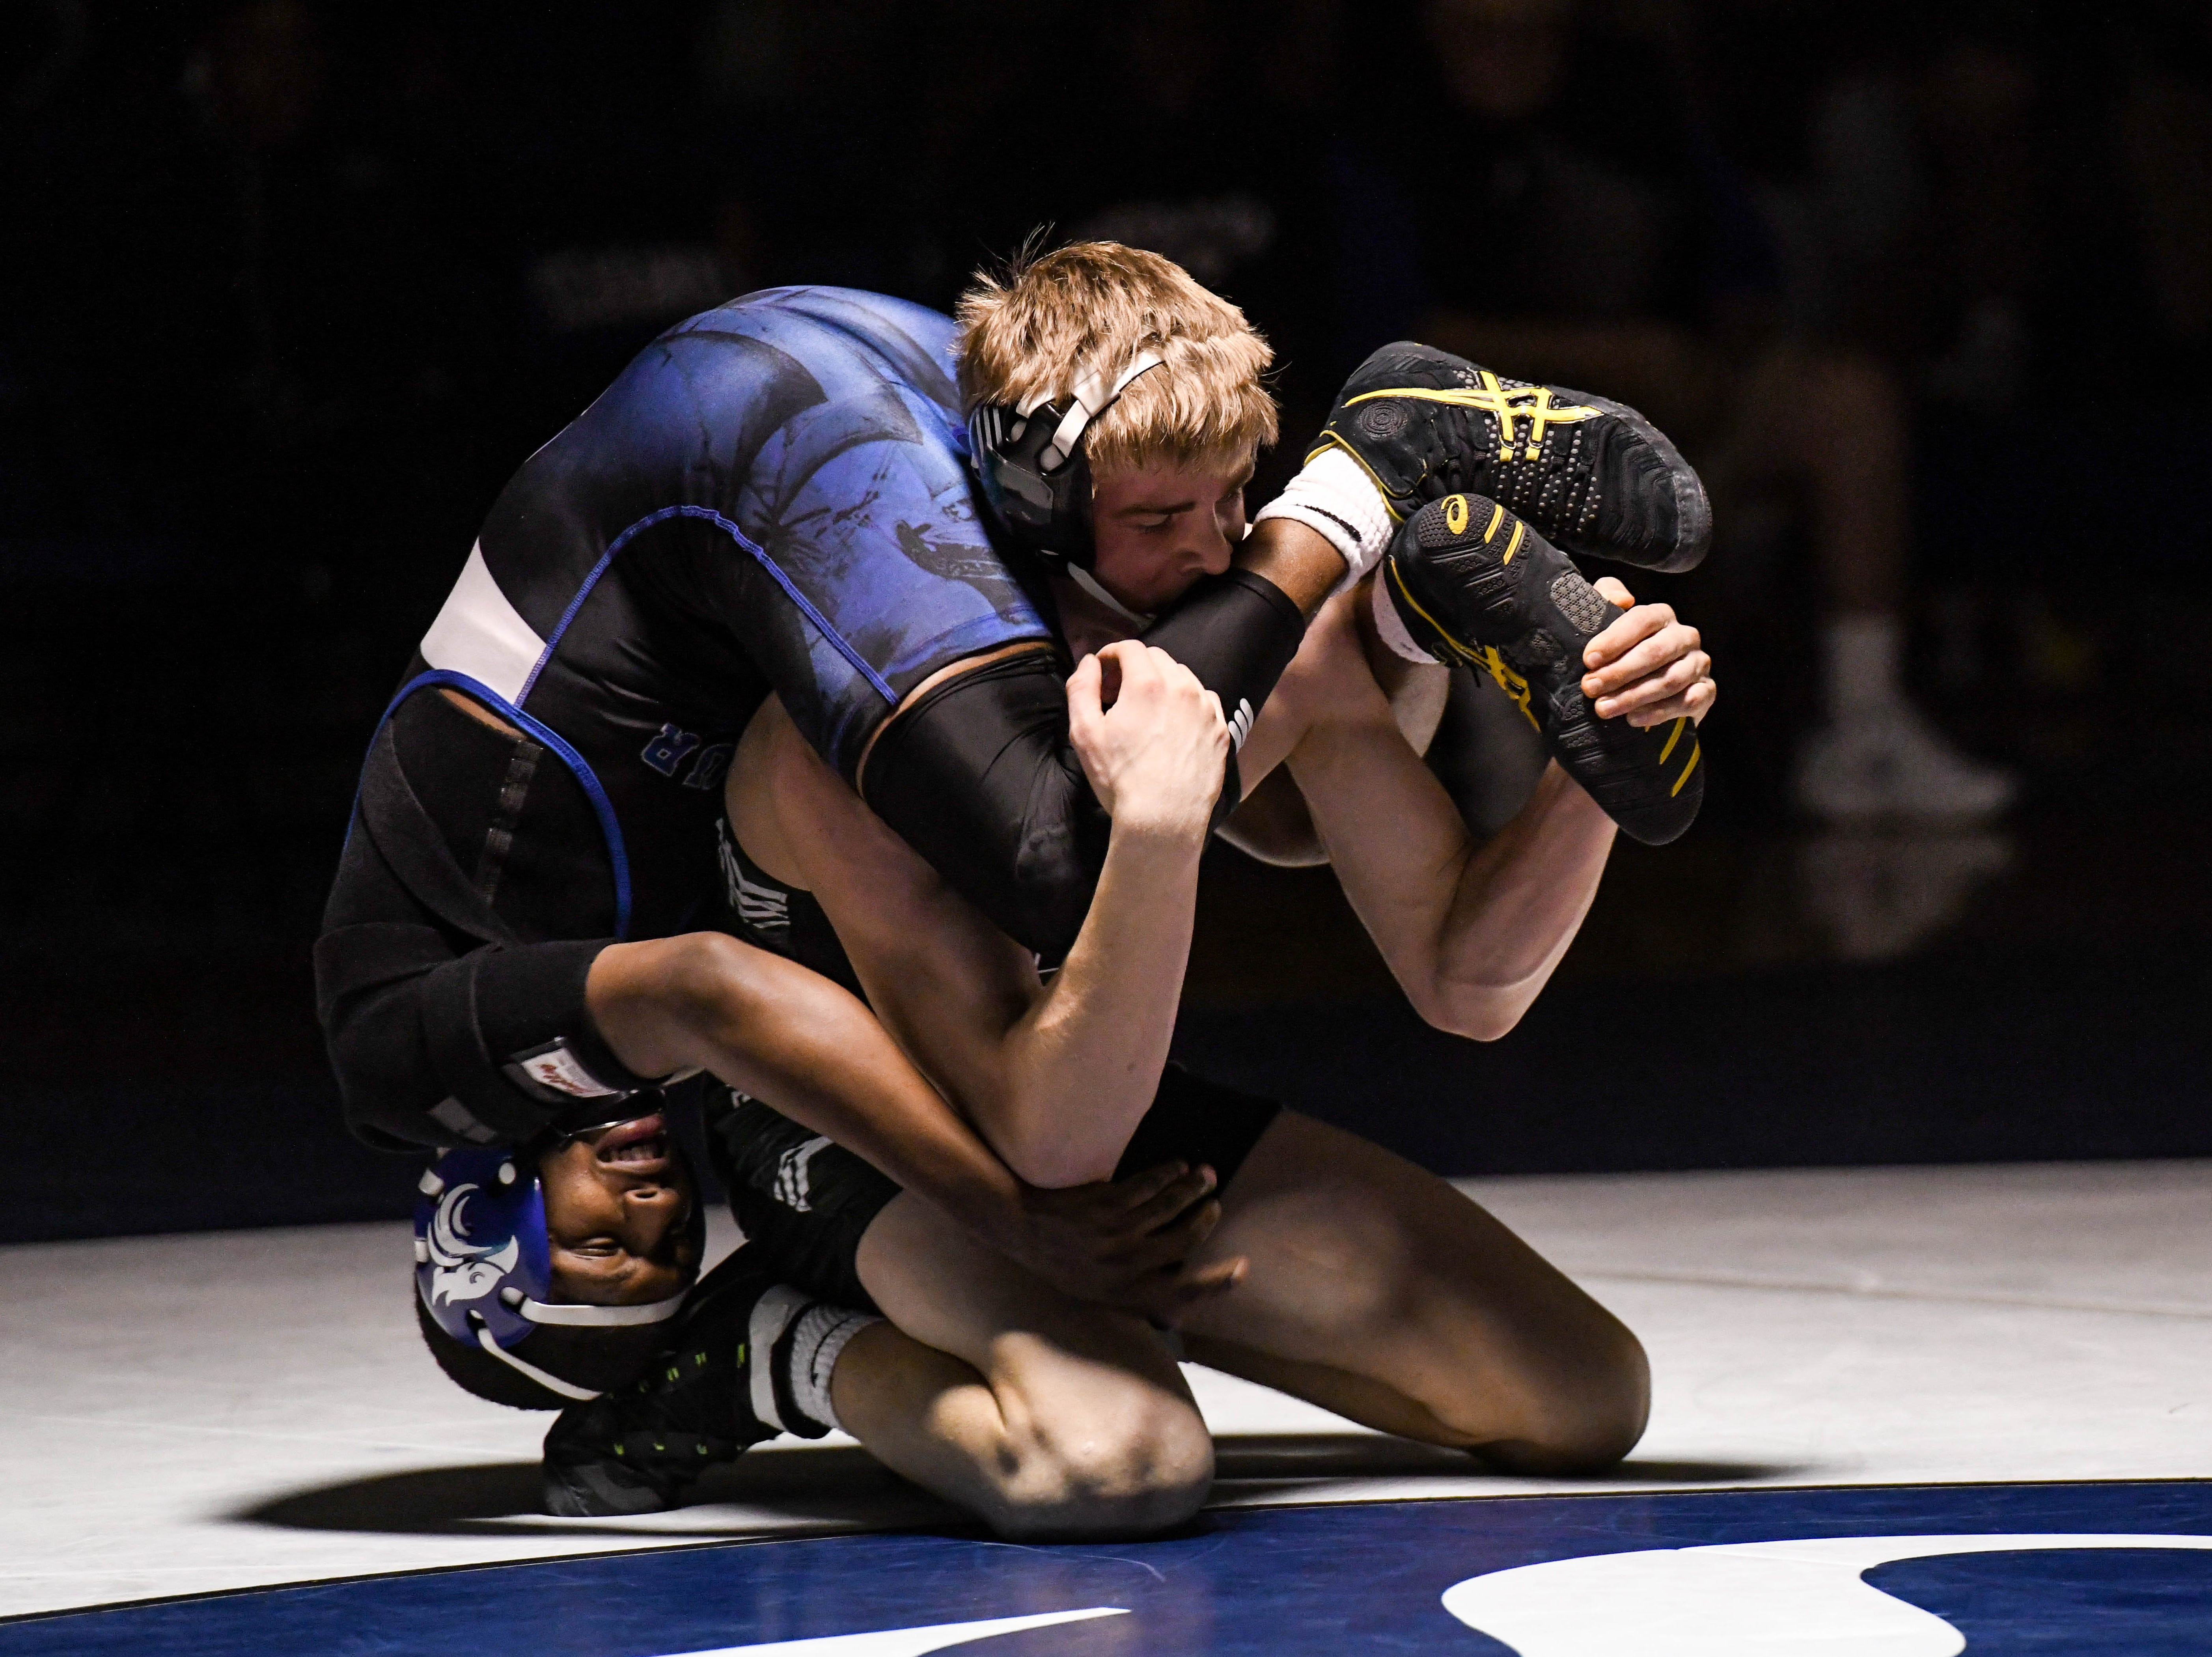 Stephen Decatur's Jhymir Blake wrestles against Parkside's Michael Daughtery in the 152 match up at Stephen Decatur High School on Wednesday, Jan. 23, 2019.